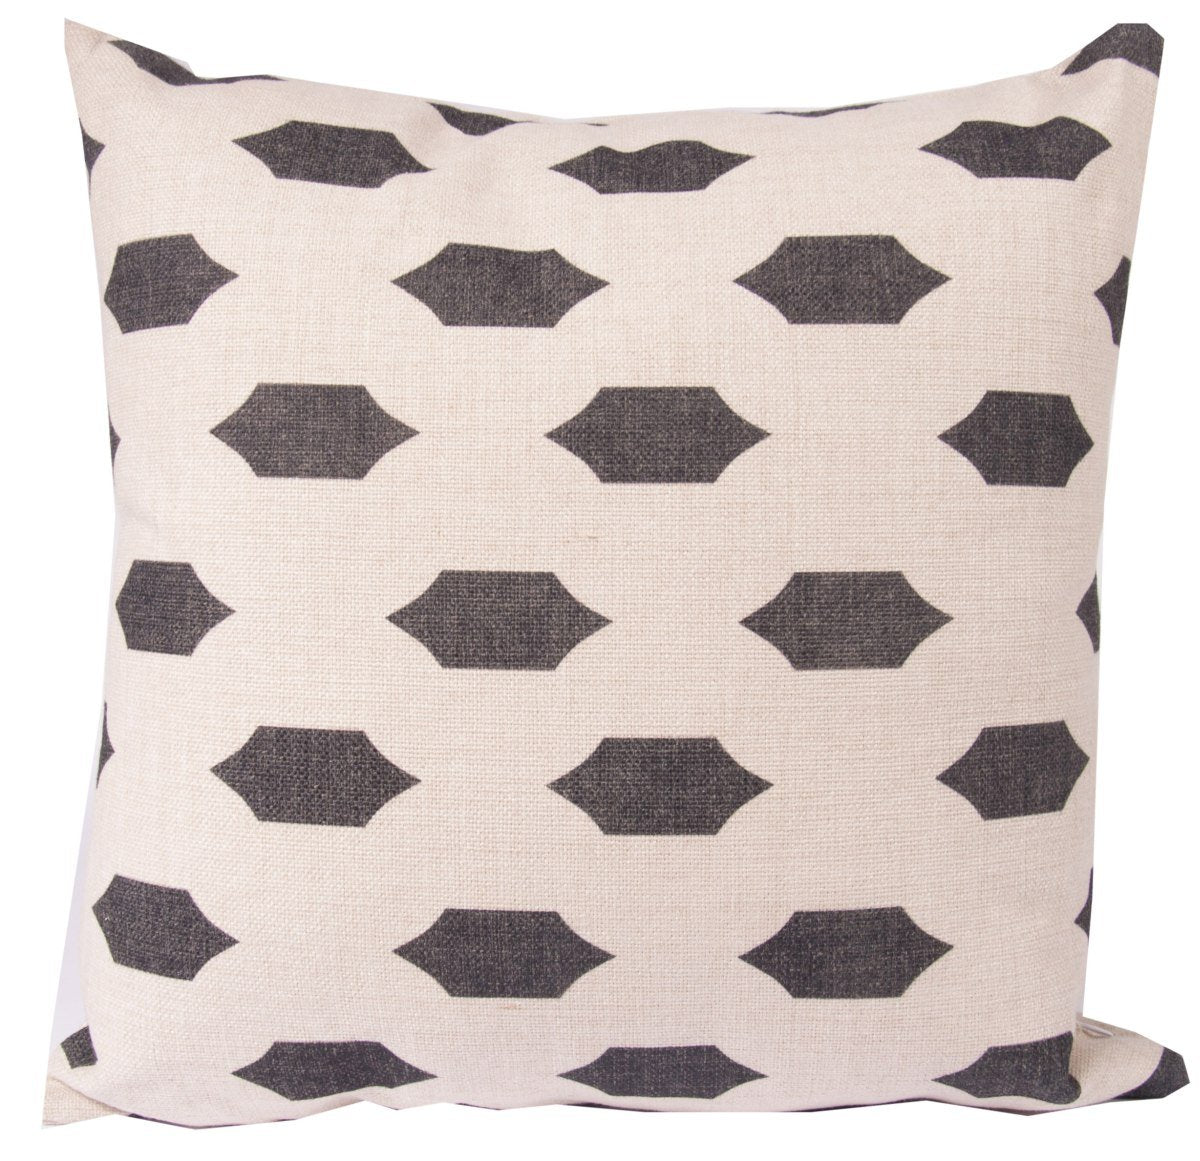 Diamonique Cushion Cover-fliphome.com.au